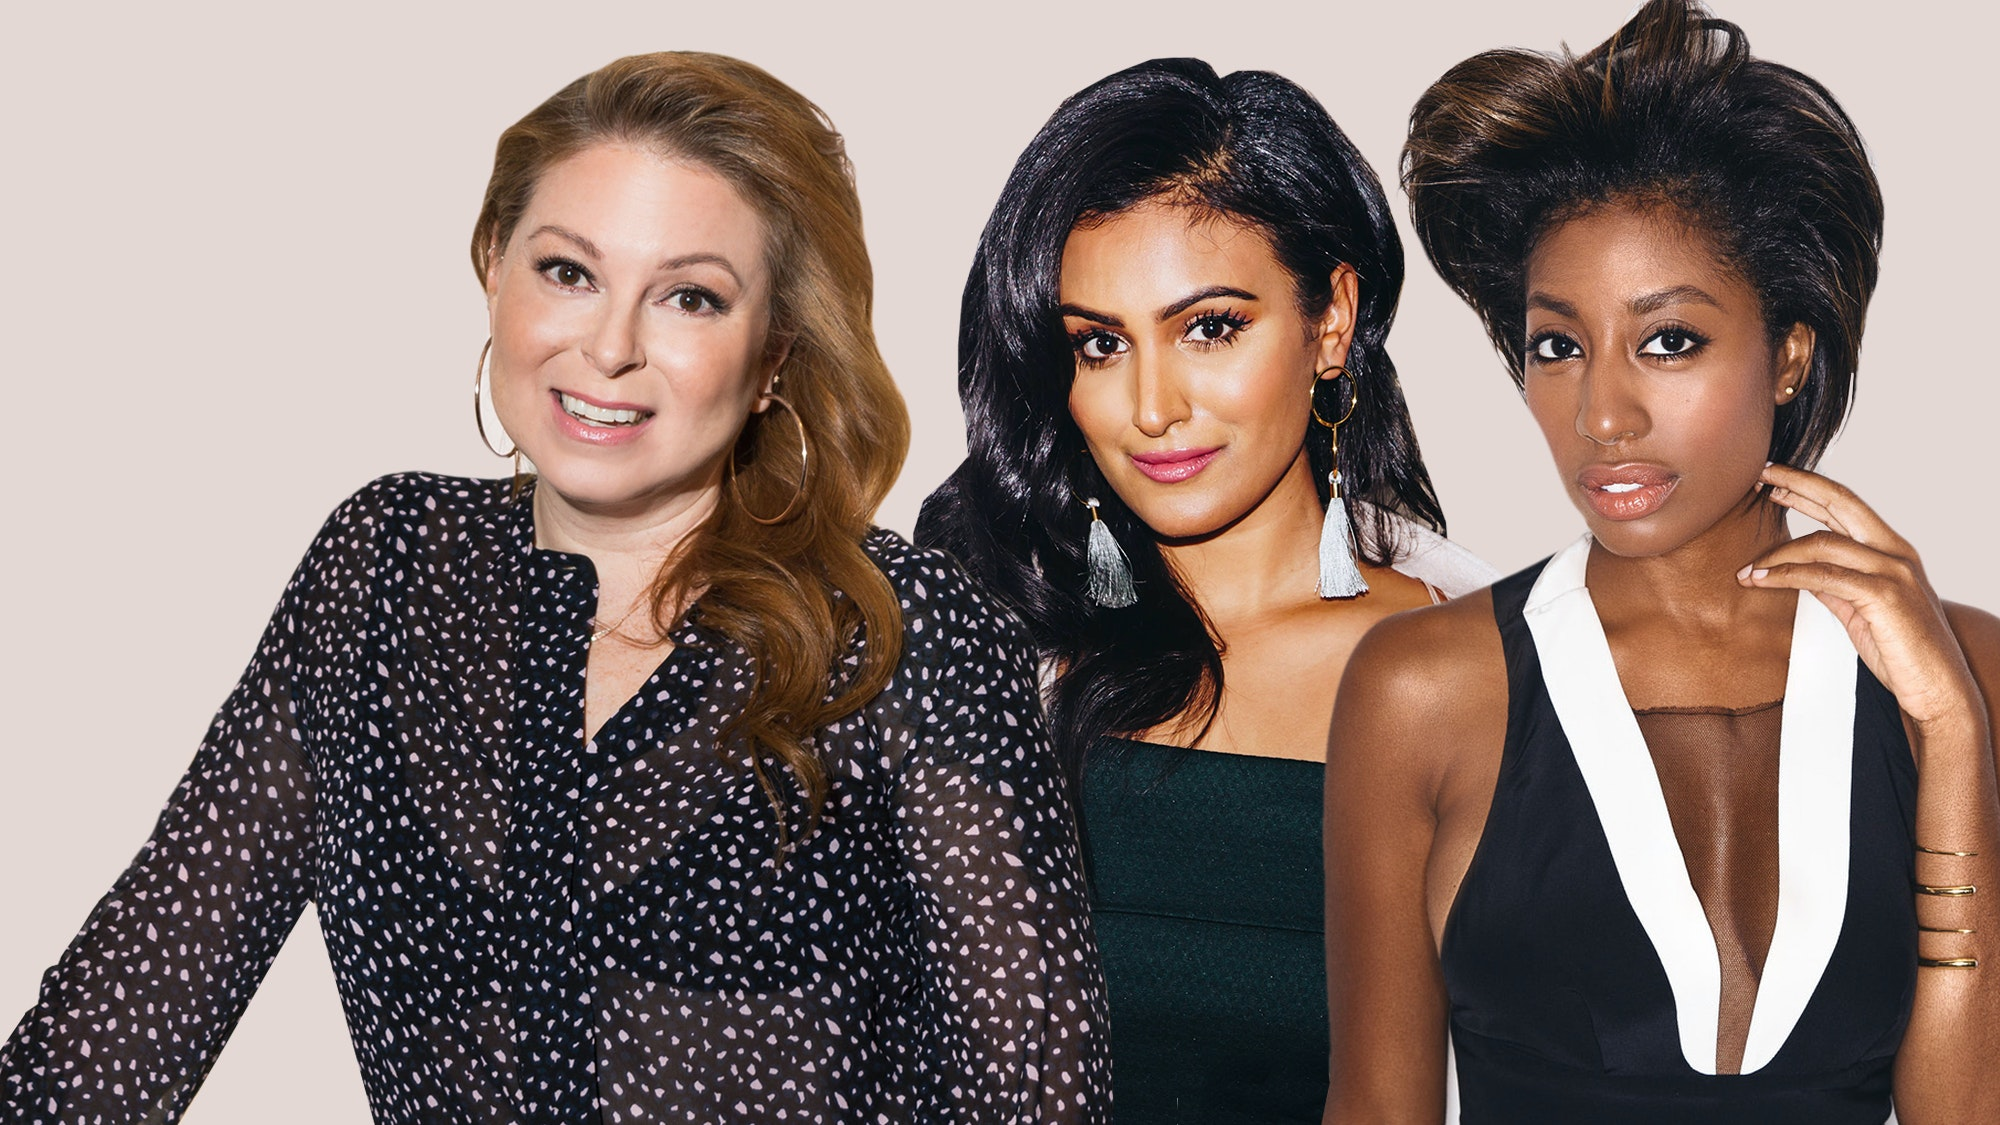 Women In Beauty and Health Who Inspire Us This International Women's Day